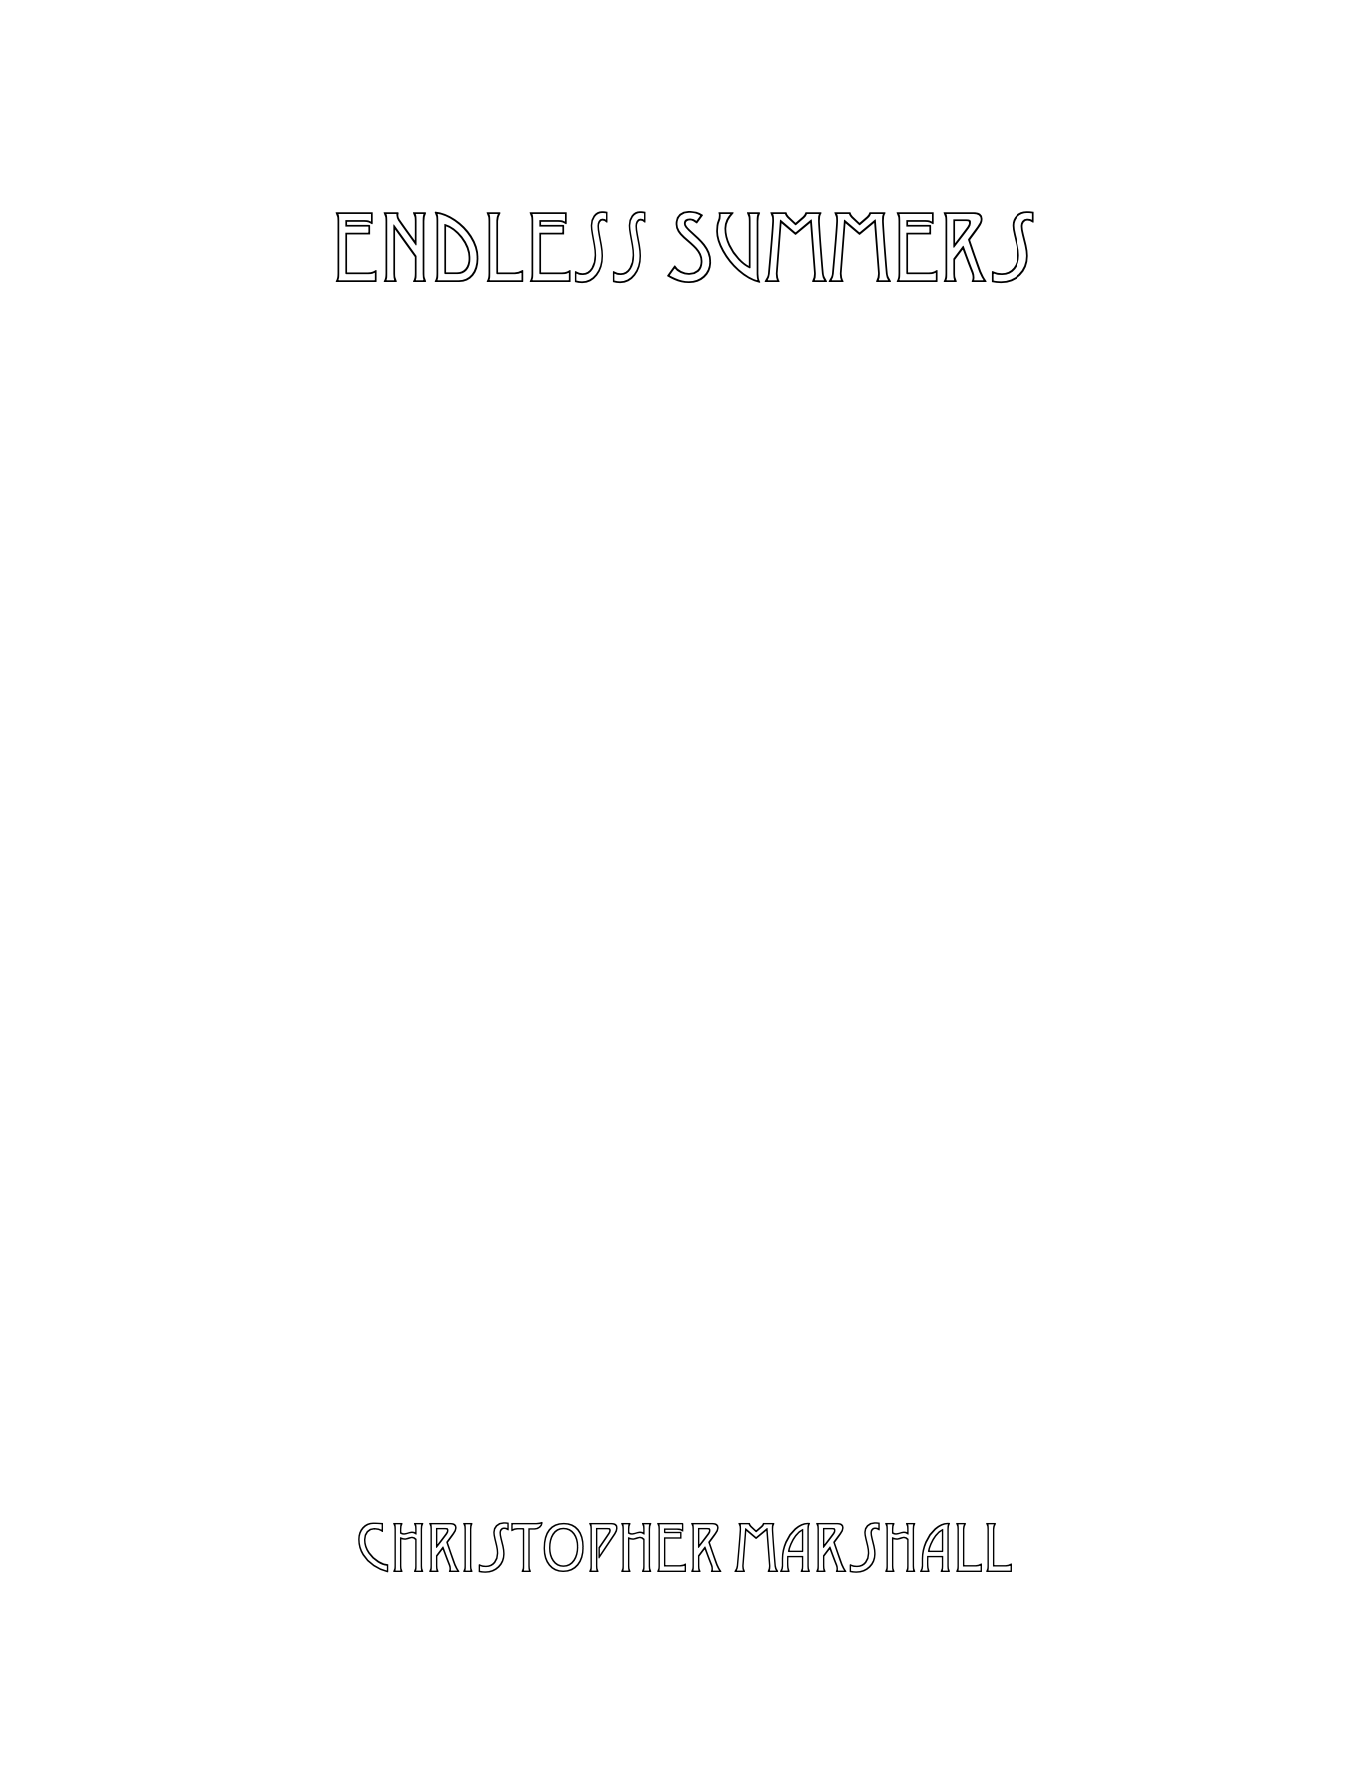 Endless Summers by Christopher Marshall